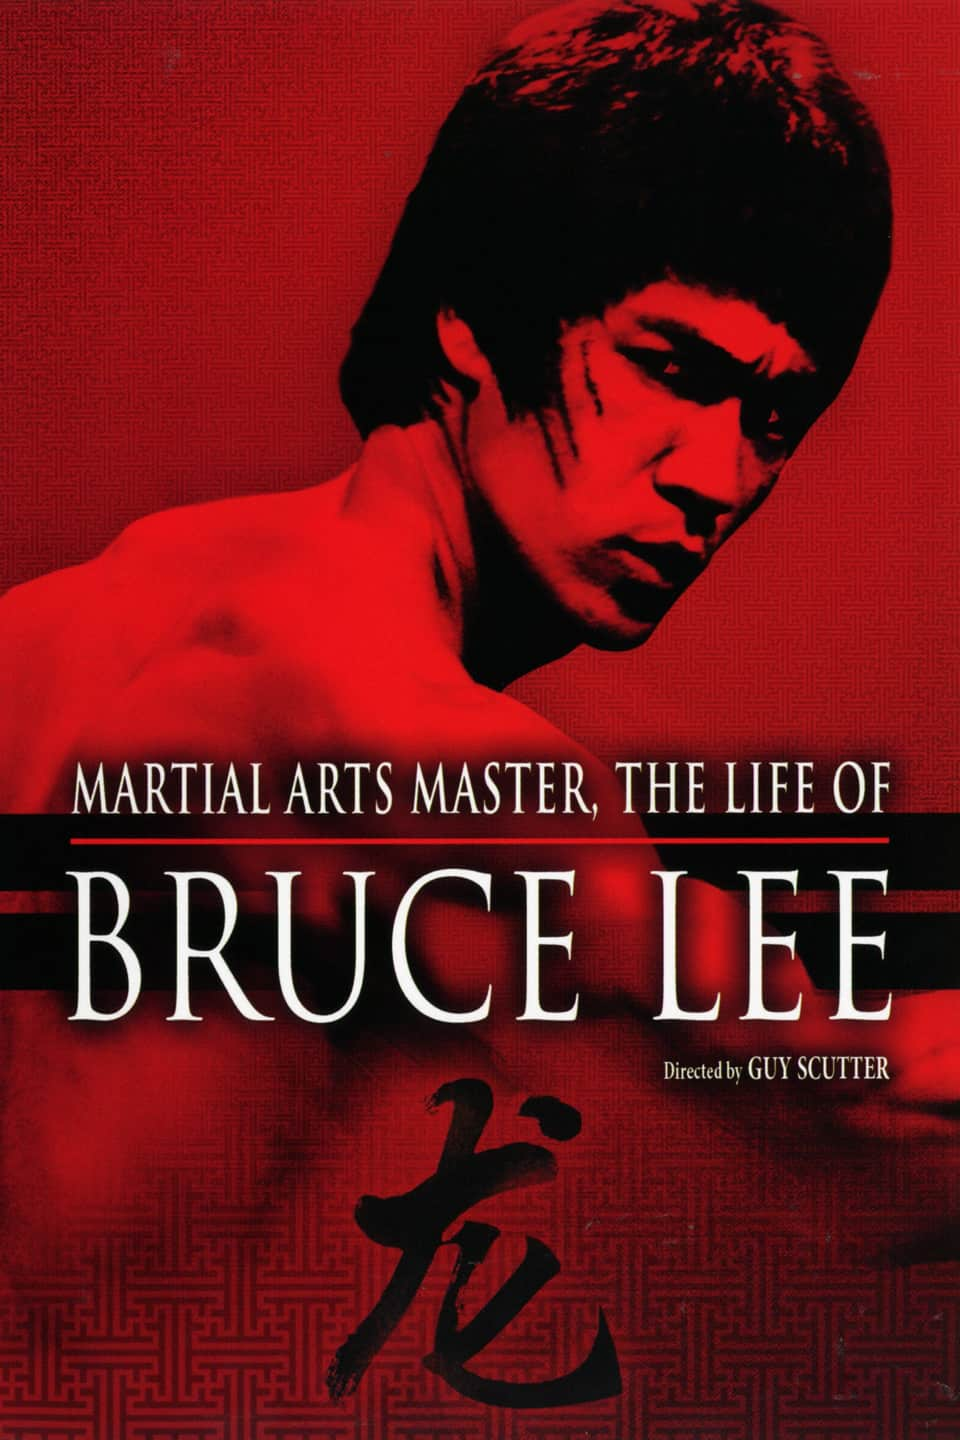 Martial Arts Master: The Life of Bruce Lee, 1994